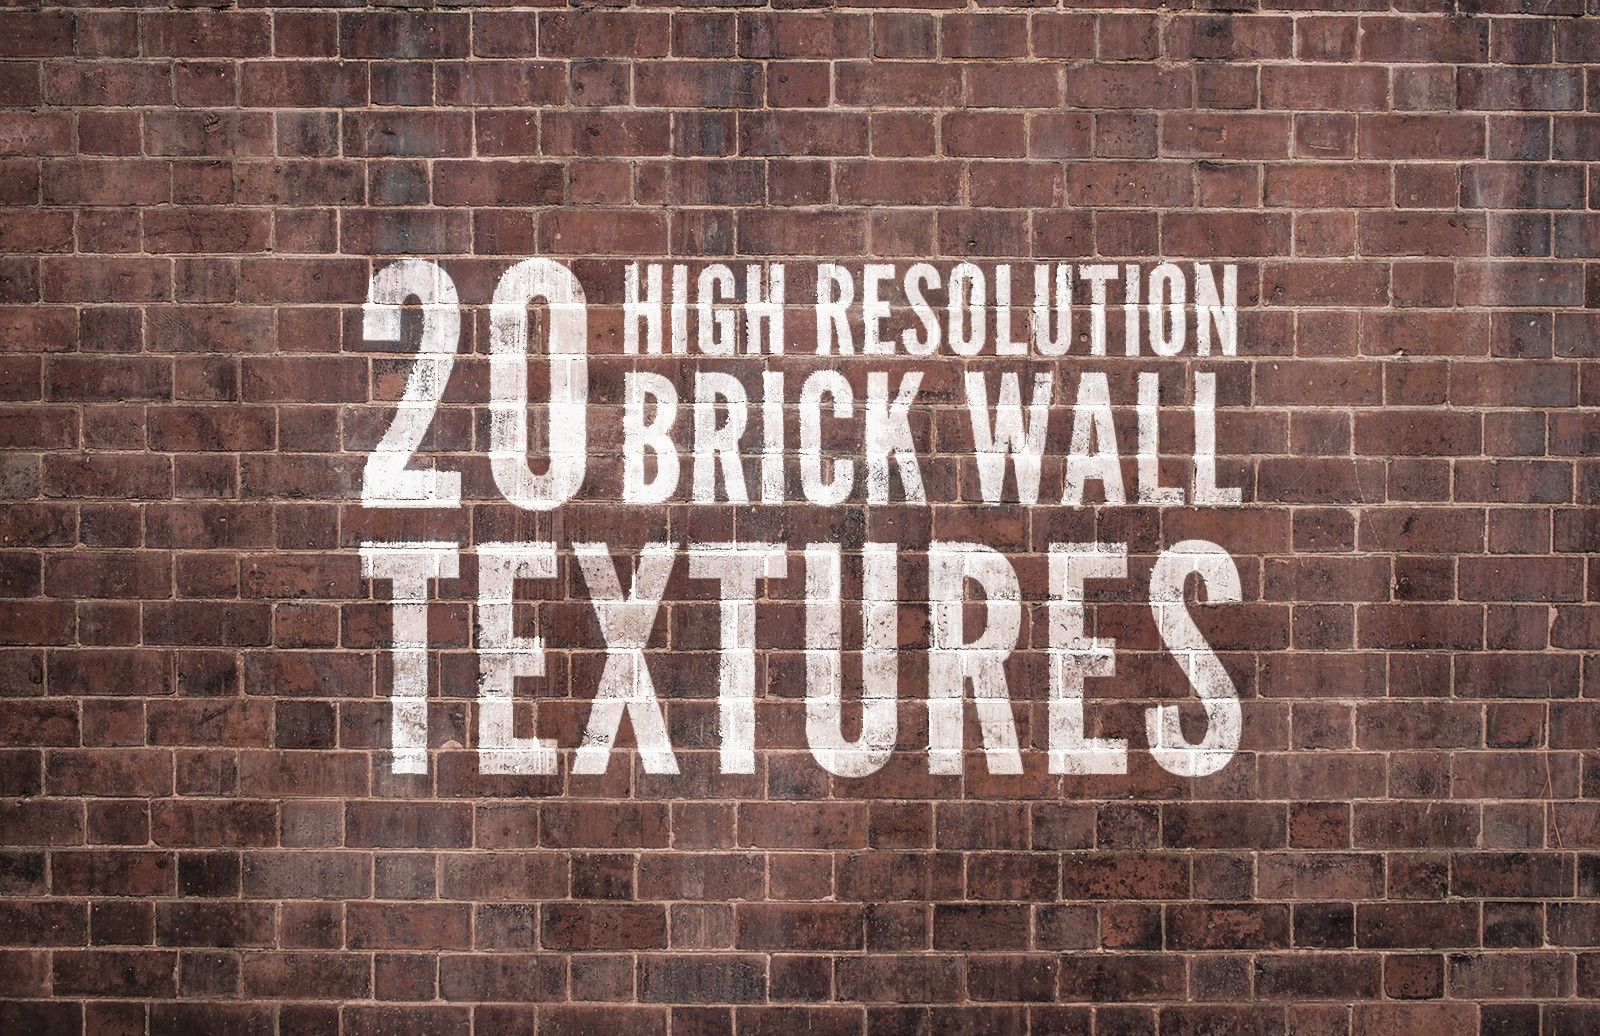 20 High Resolution Brick Wall Textures